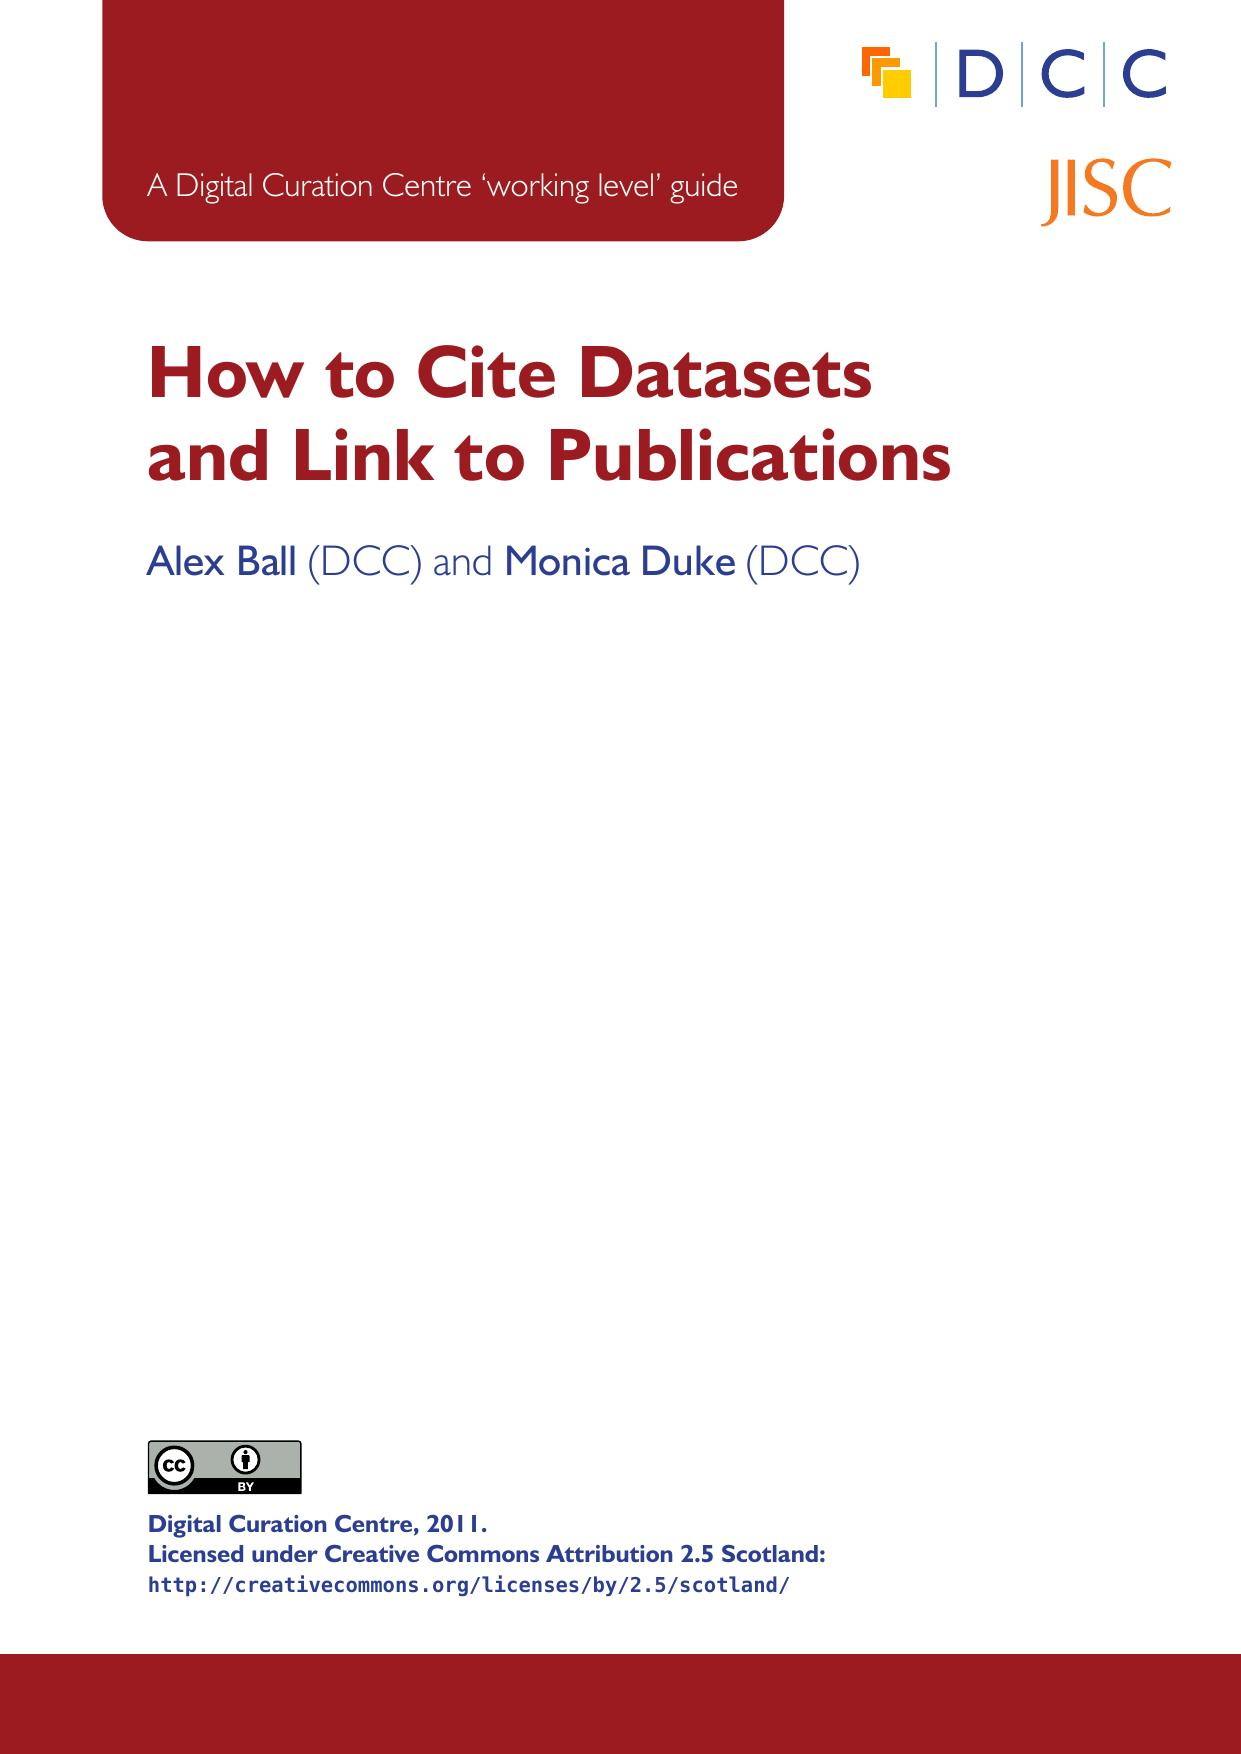 How to Cite Datasets and Link to Publications